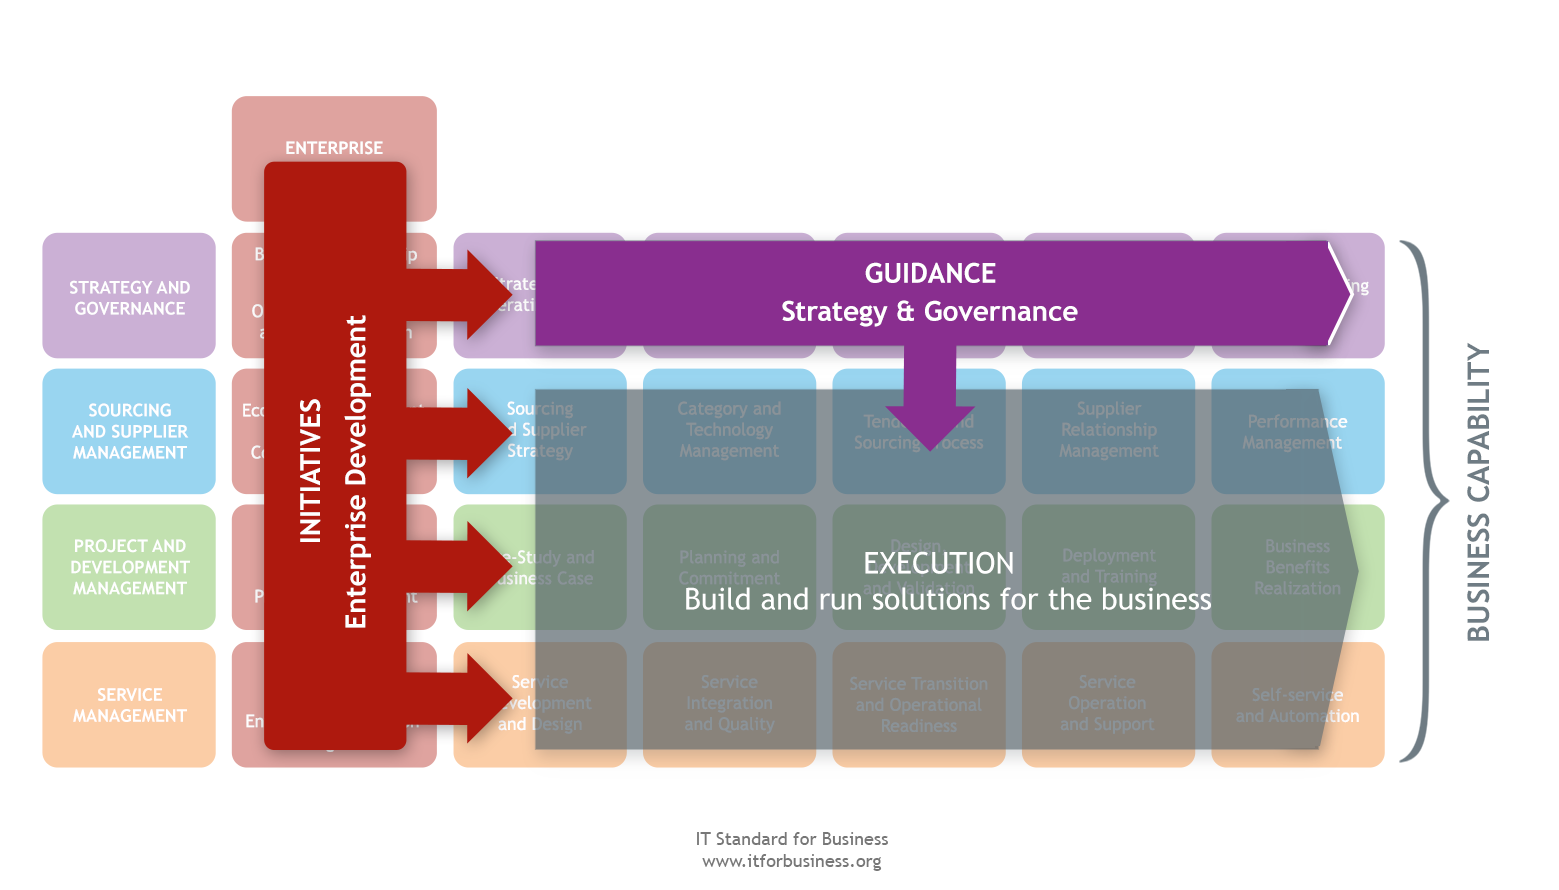 3.1 Strategy and Governance Overview 3.1 Overview Strategy and Governance Significance and Objectives Strategy and Governance defines the guidelines for managing IT.